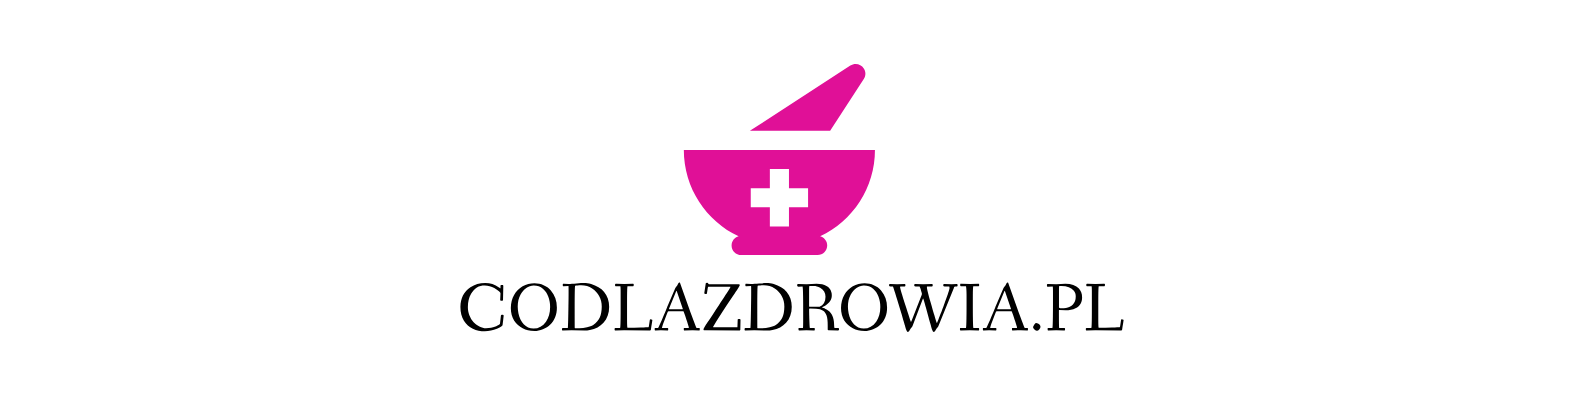 codlazdrowia.pl